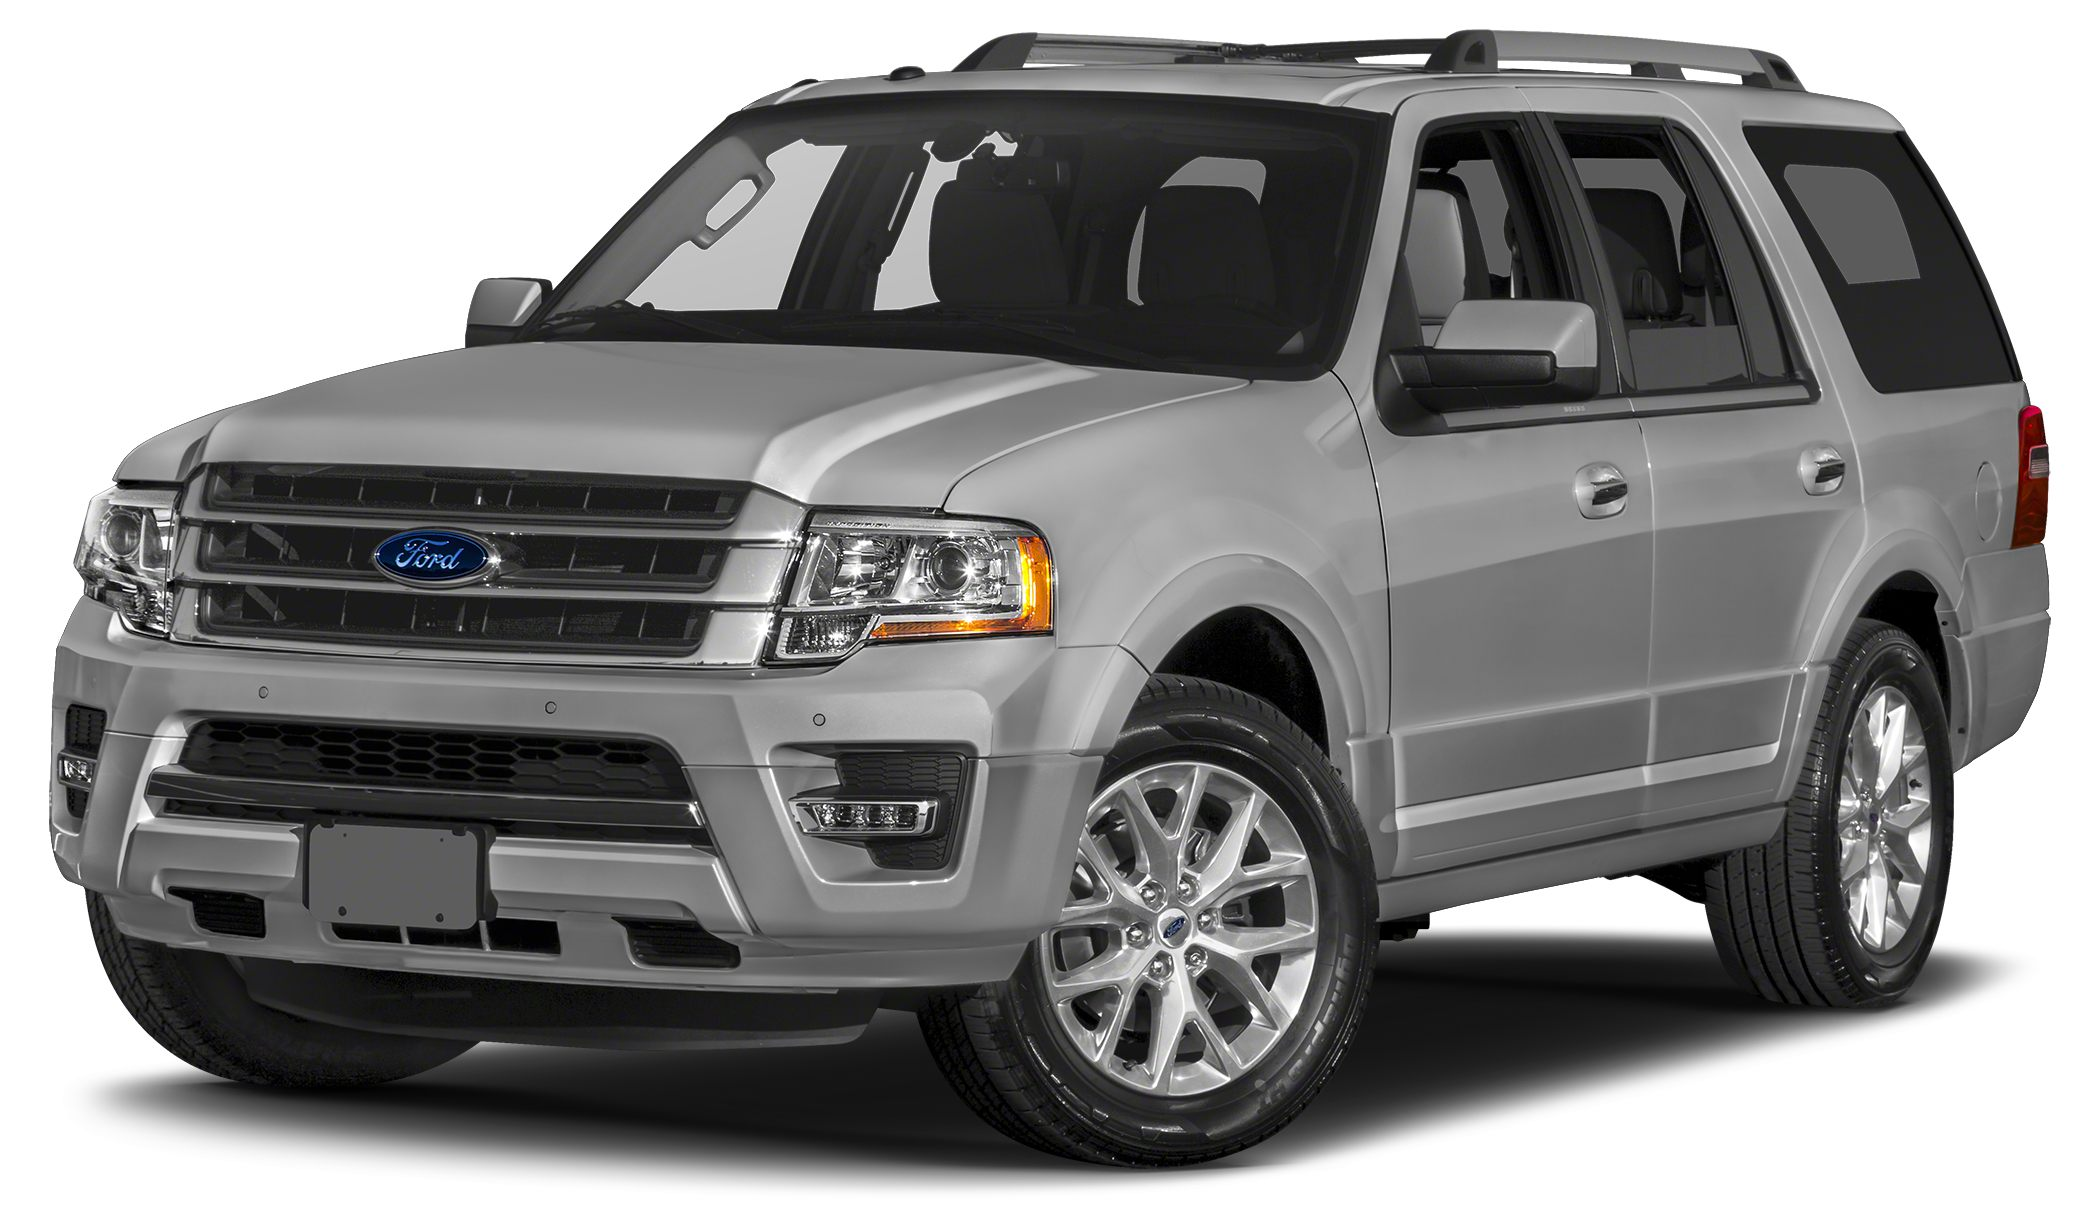 2017 Ford Expedition Limited 2017 Ford Expedition Limited Price includes 1000 - Ford Credit Ret